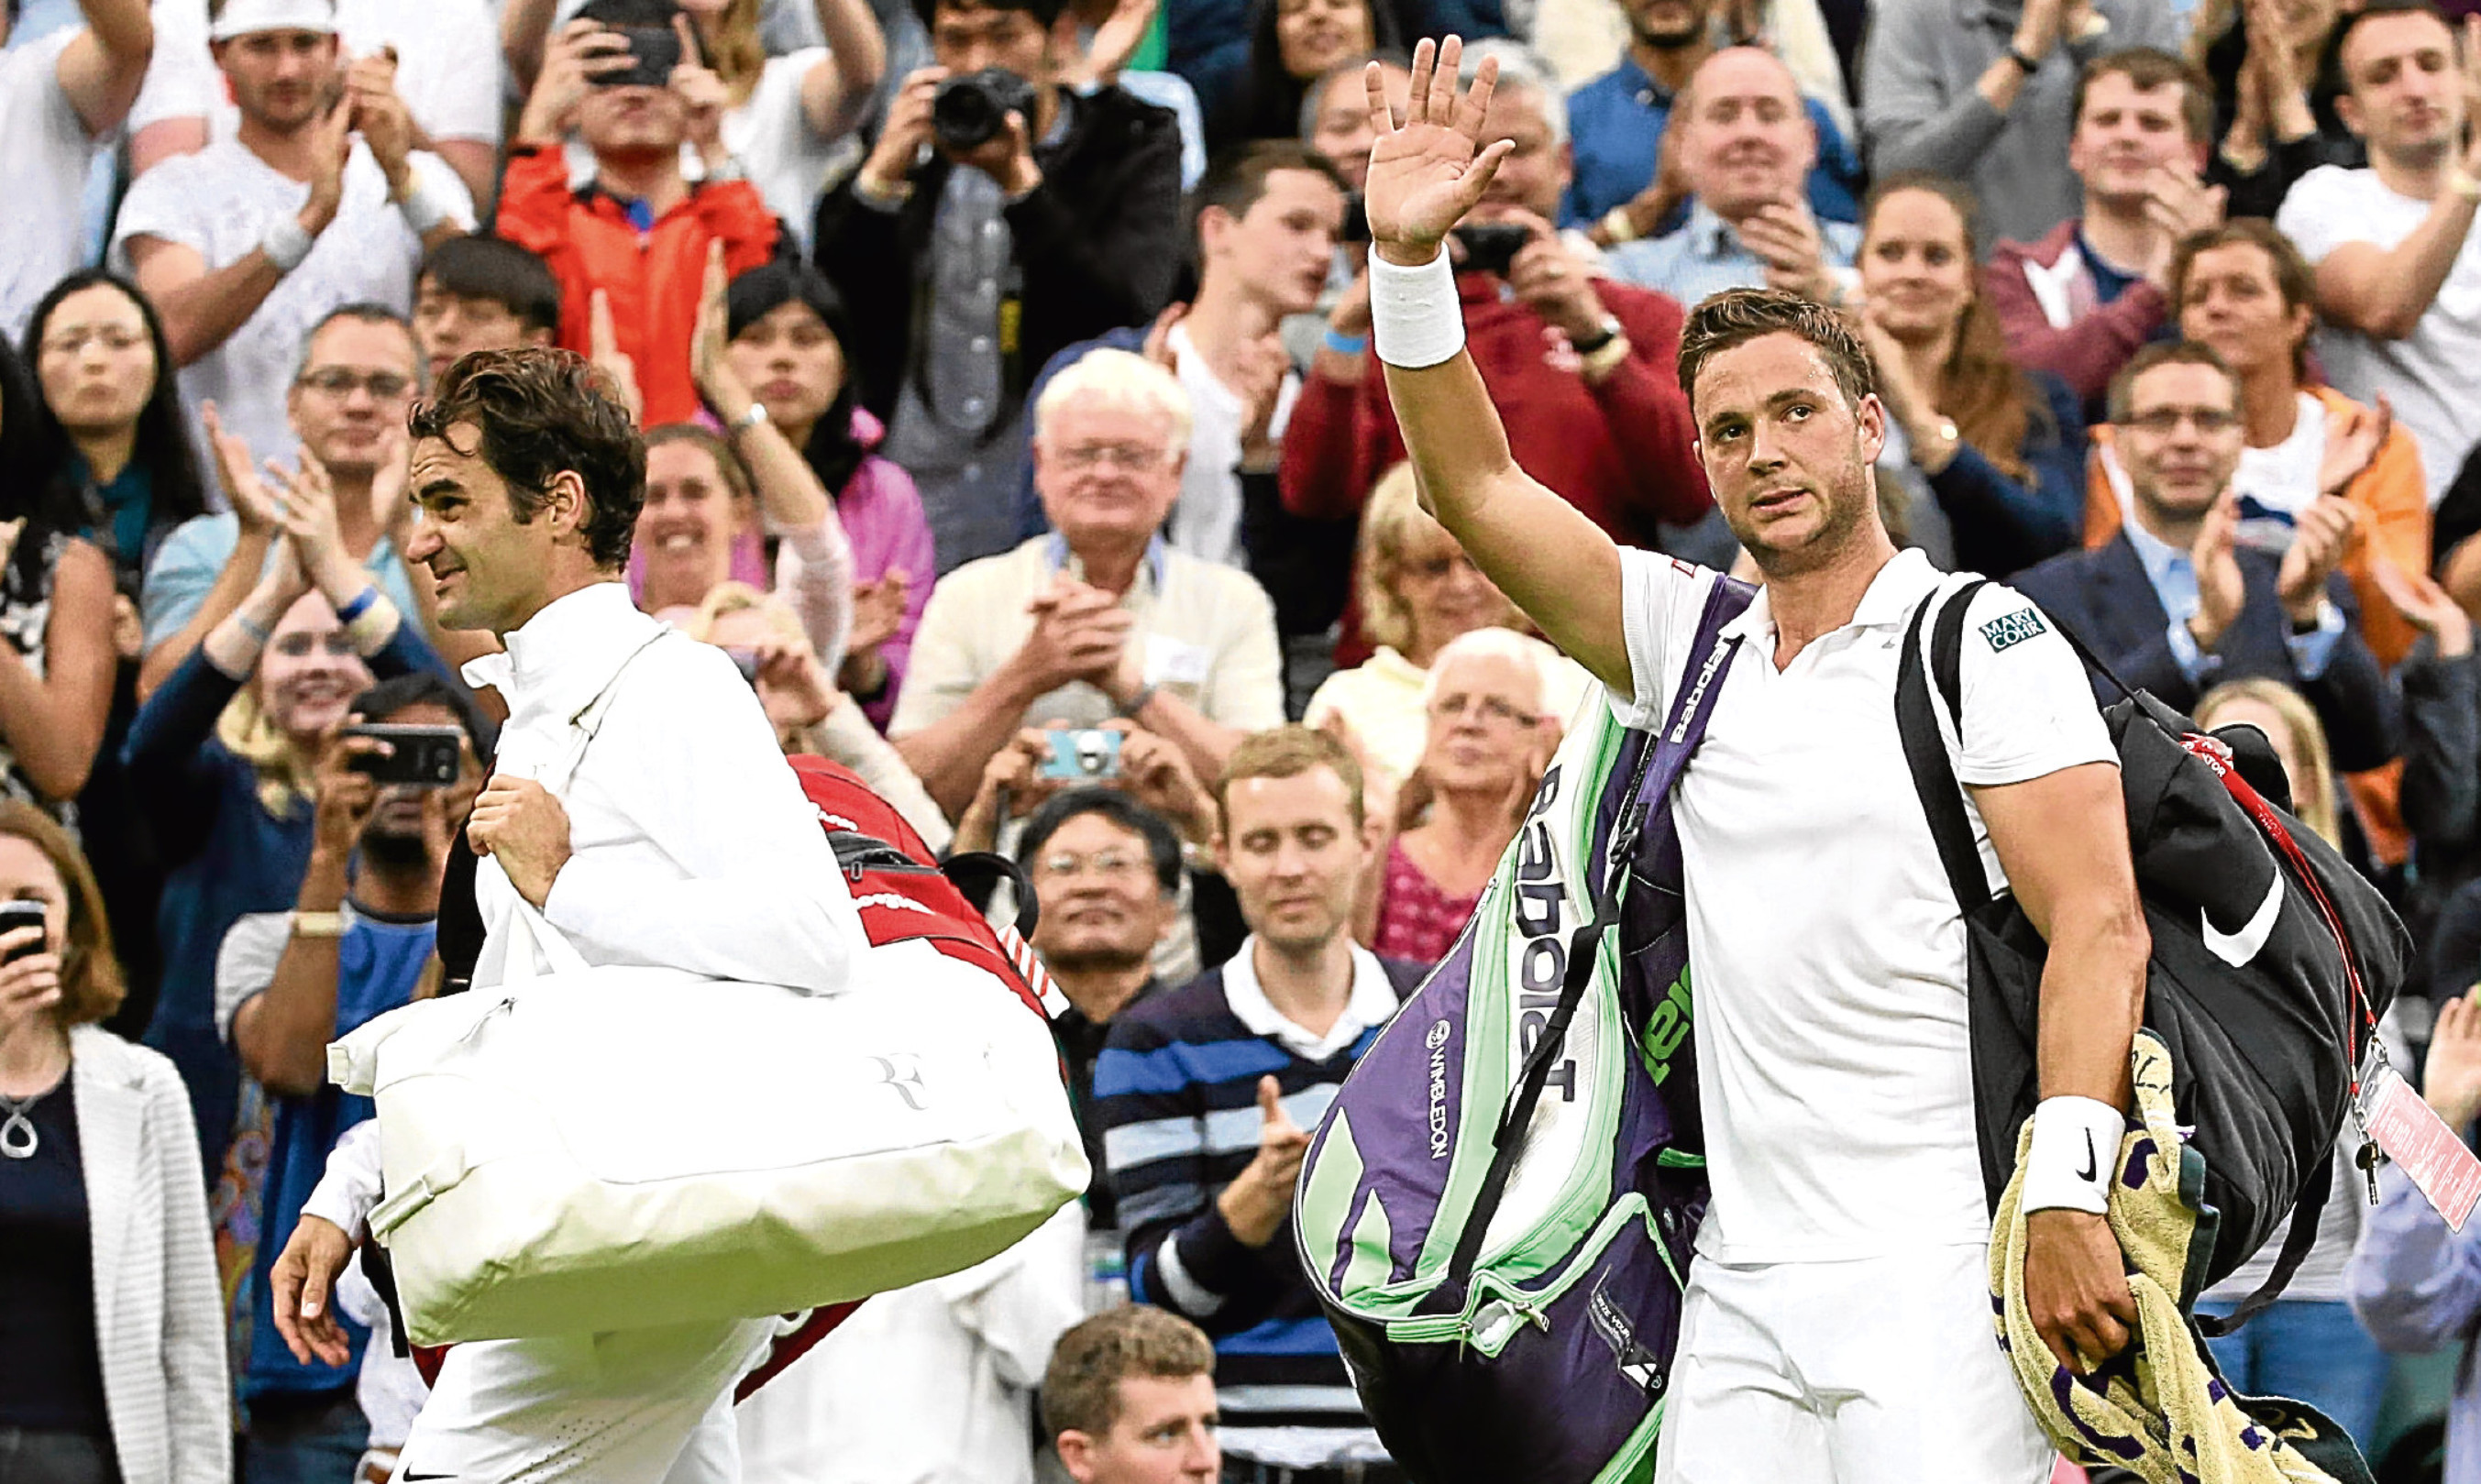 """""""Plucky underdog"""" Marcus Willis waves as he leaves centre court with Roger Federer following defeat at Wimbledon."""